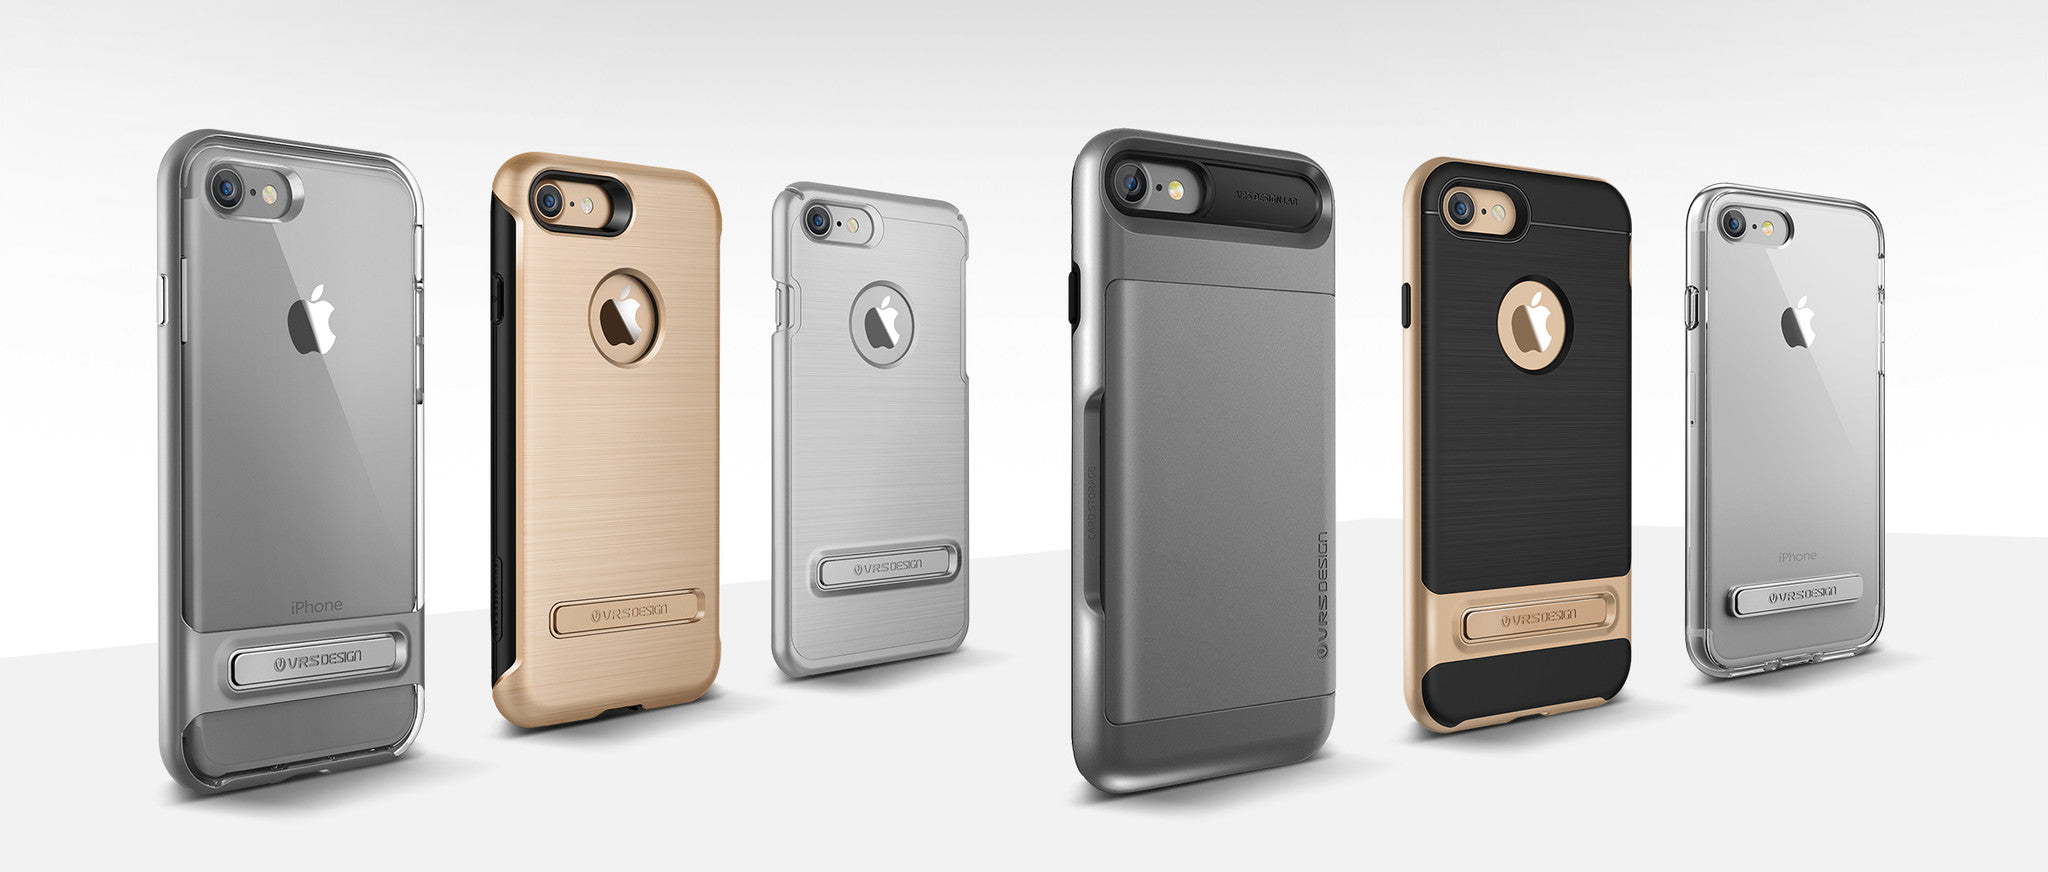 Protect and personalize: VRS Design's new iPhone 7 Plus case lineup hits the market